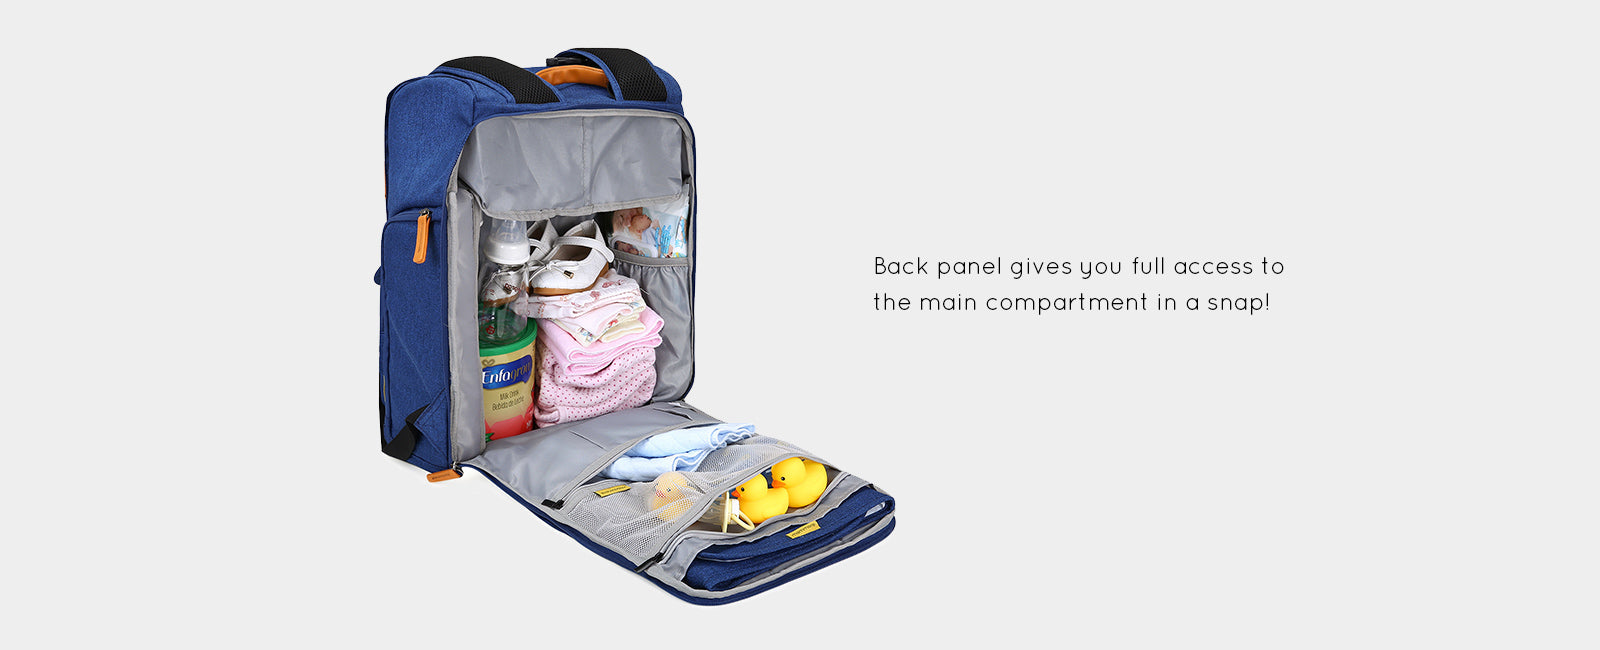 Back-open Baby Diaper Backpack Multi-function Travel Nappy Bag with Changing Pad Stroller Strap Secure Back Pocket